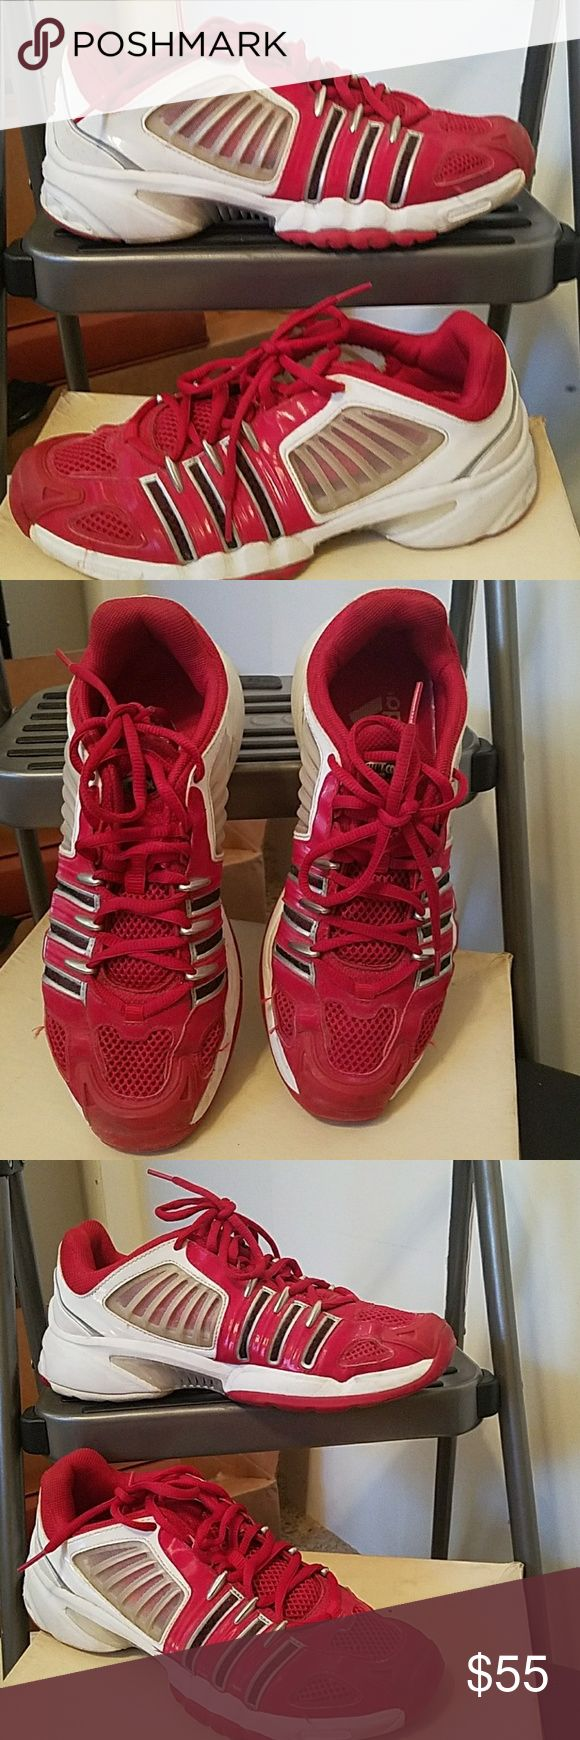 Adidas ClimaCool Red Athletic Shoes Awesome Adidas ClimaCool Red Athletic Shoes. Size 8.5. Super cool shoes Adidas Shoes Athletic Shoes